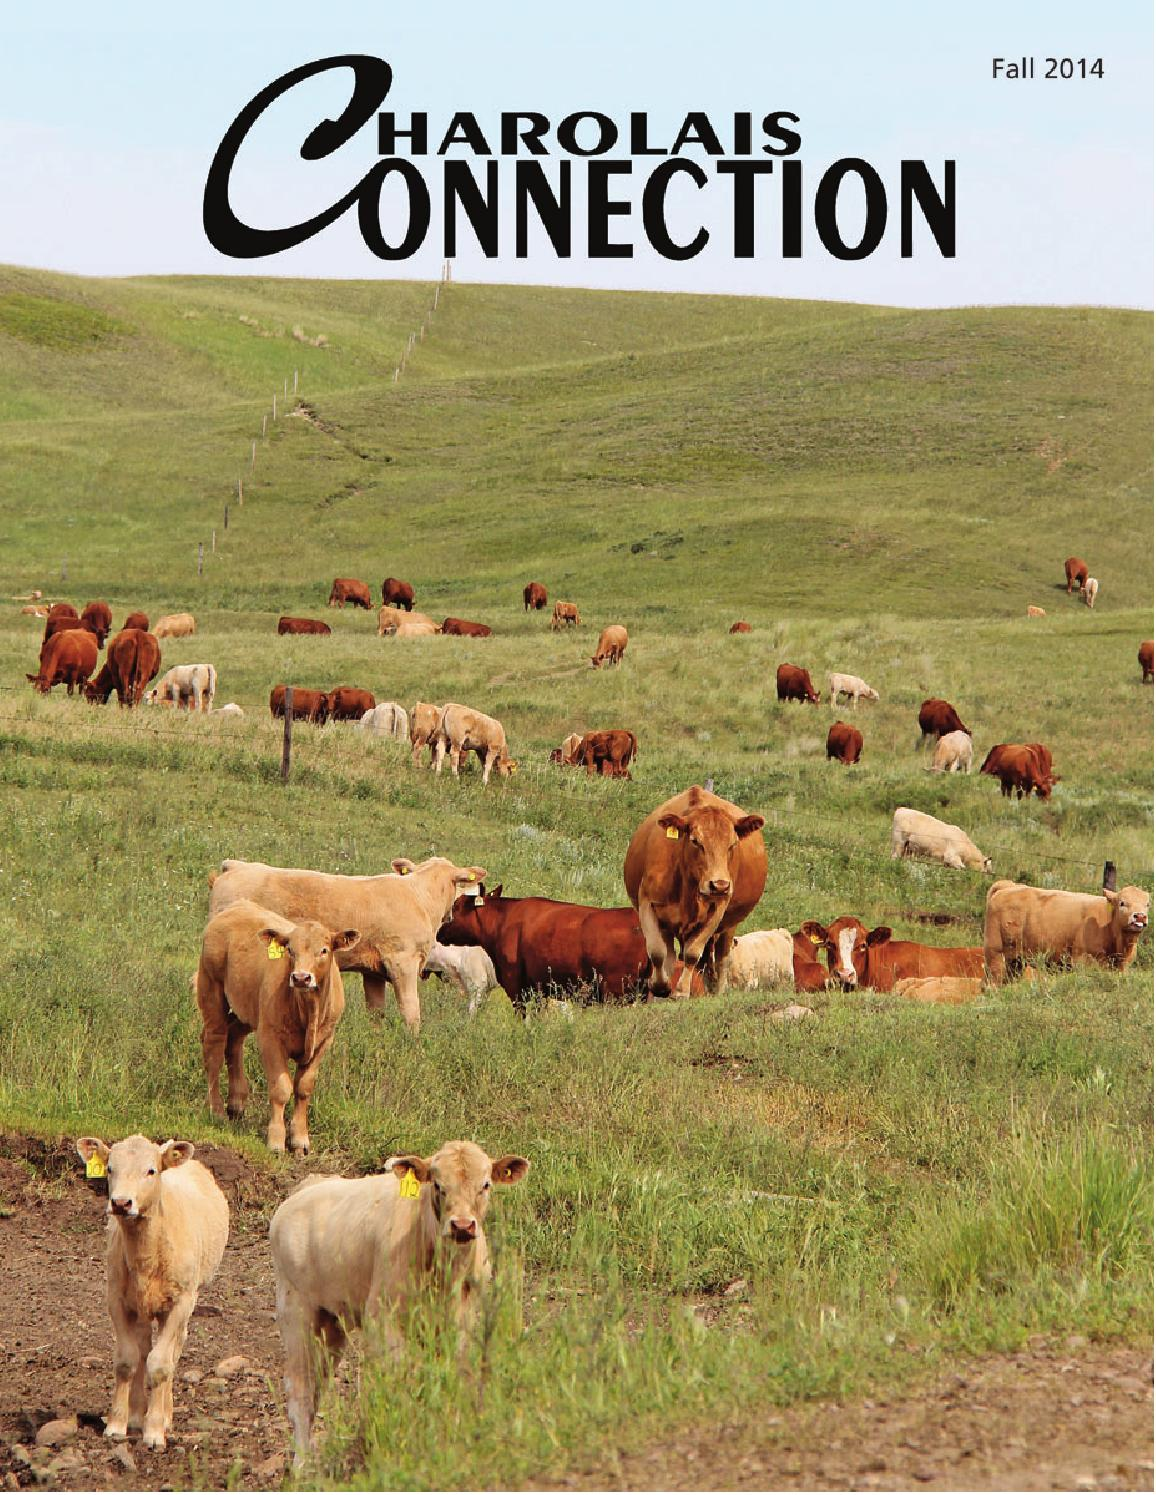 Fall 2014 charolais connection by Charolais Banner - issuu